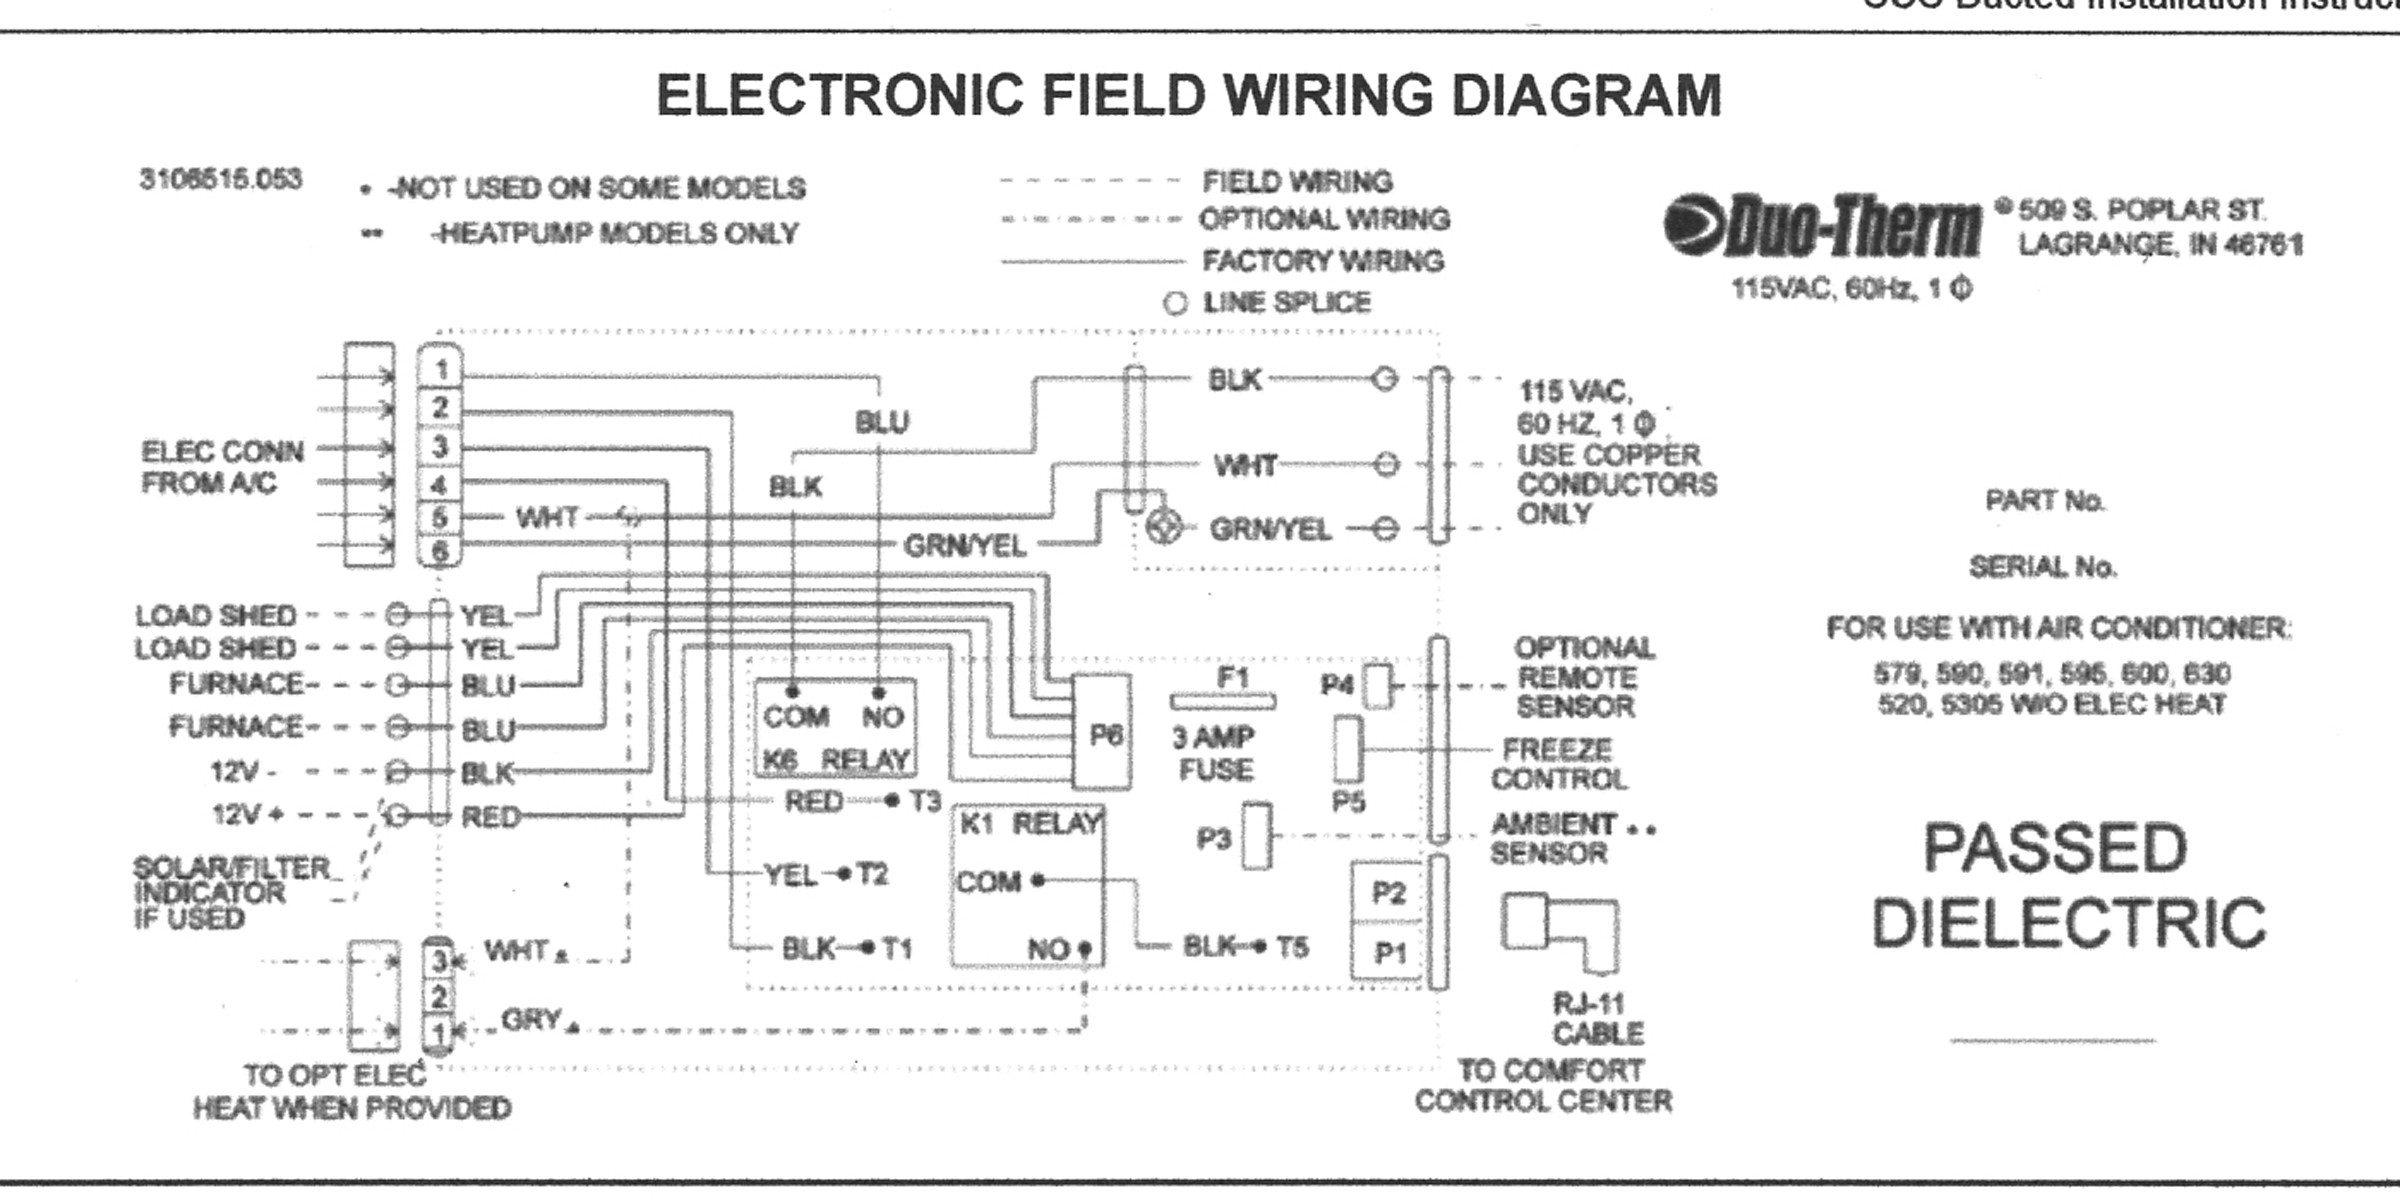 duo therm wiring diagram dometic duo therm wiring diagram dometic rv thermostat wiring diagram | free wiring diagram